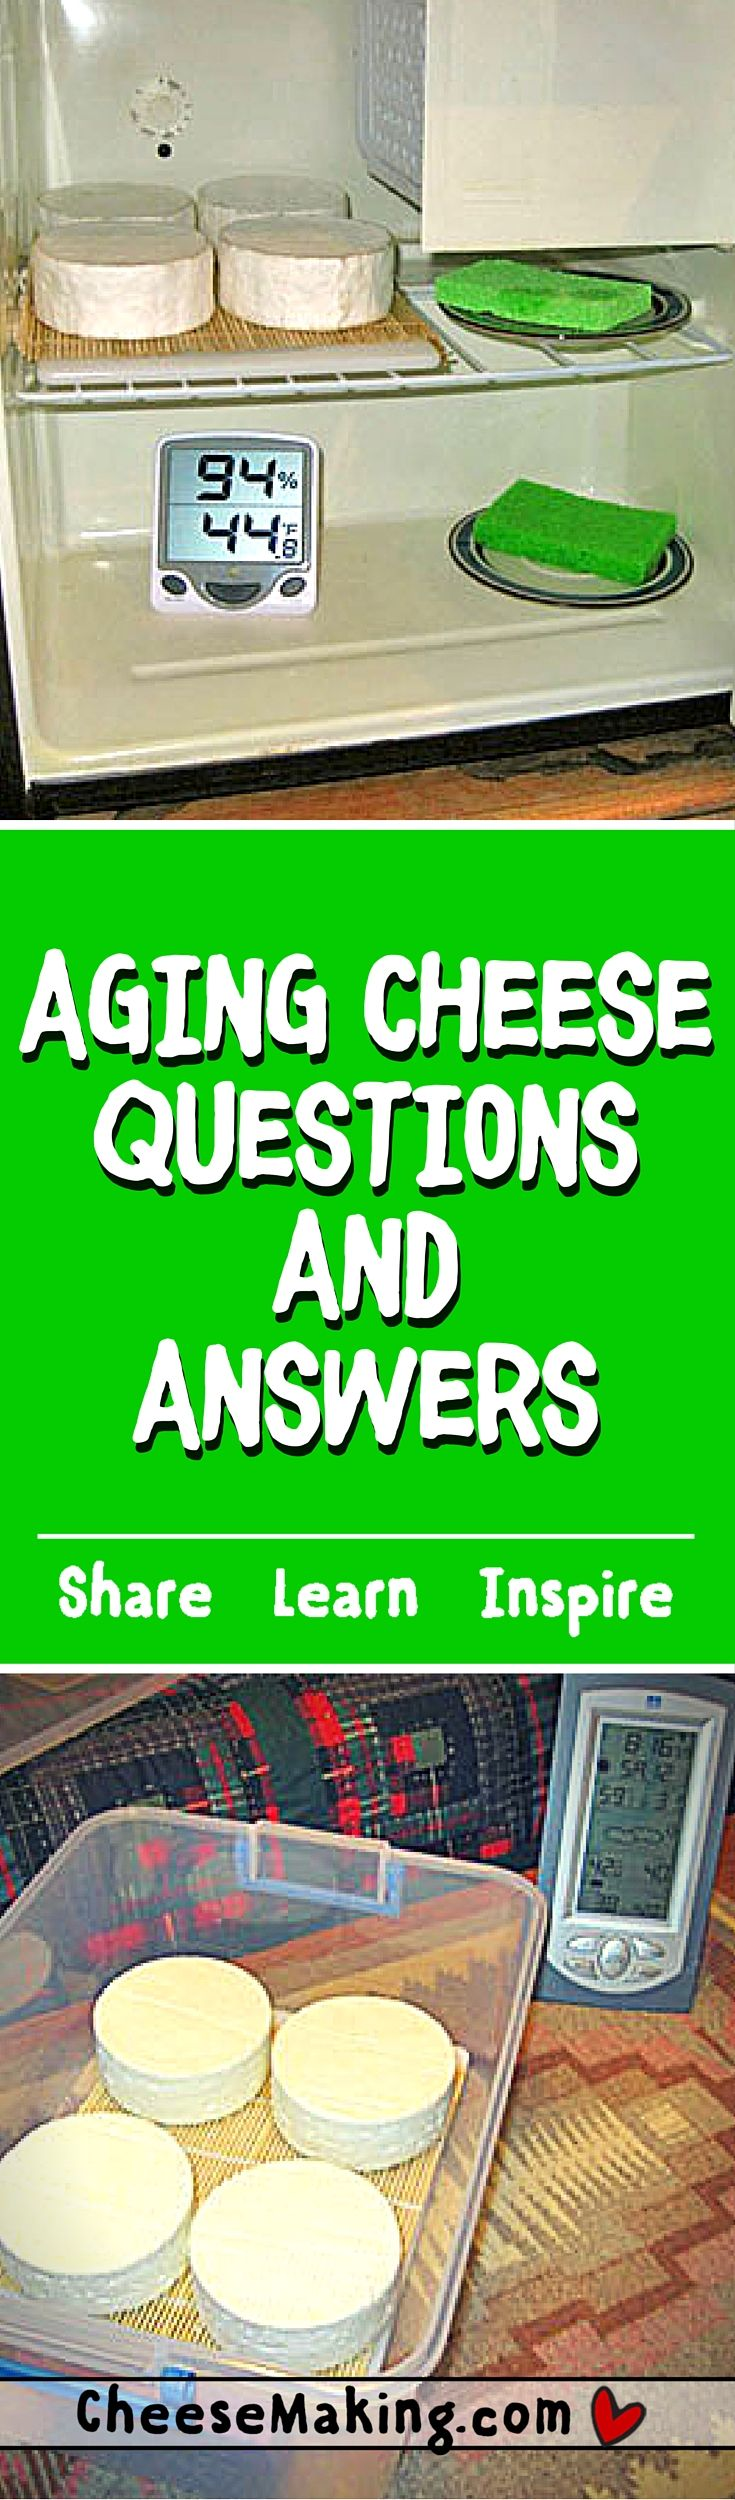 Find Answers to all of your questions on aging cheese at home.